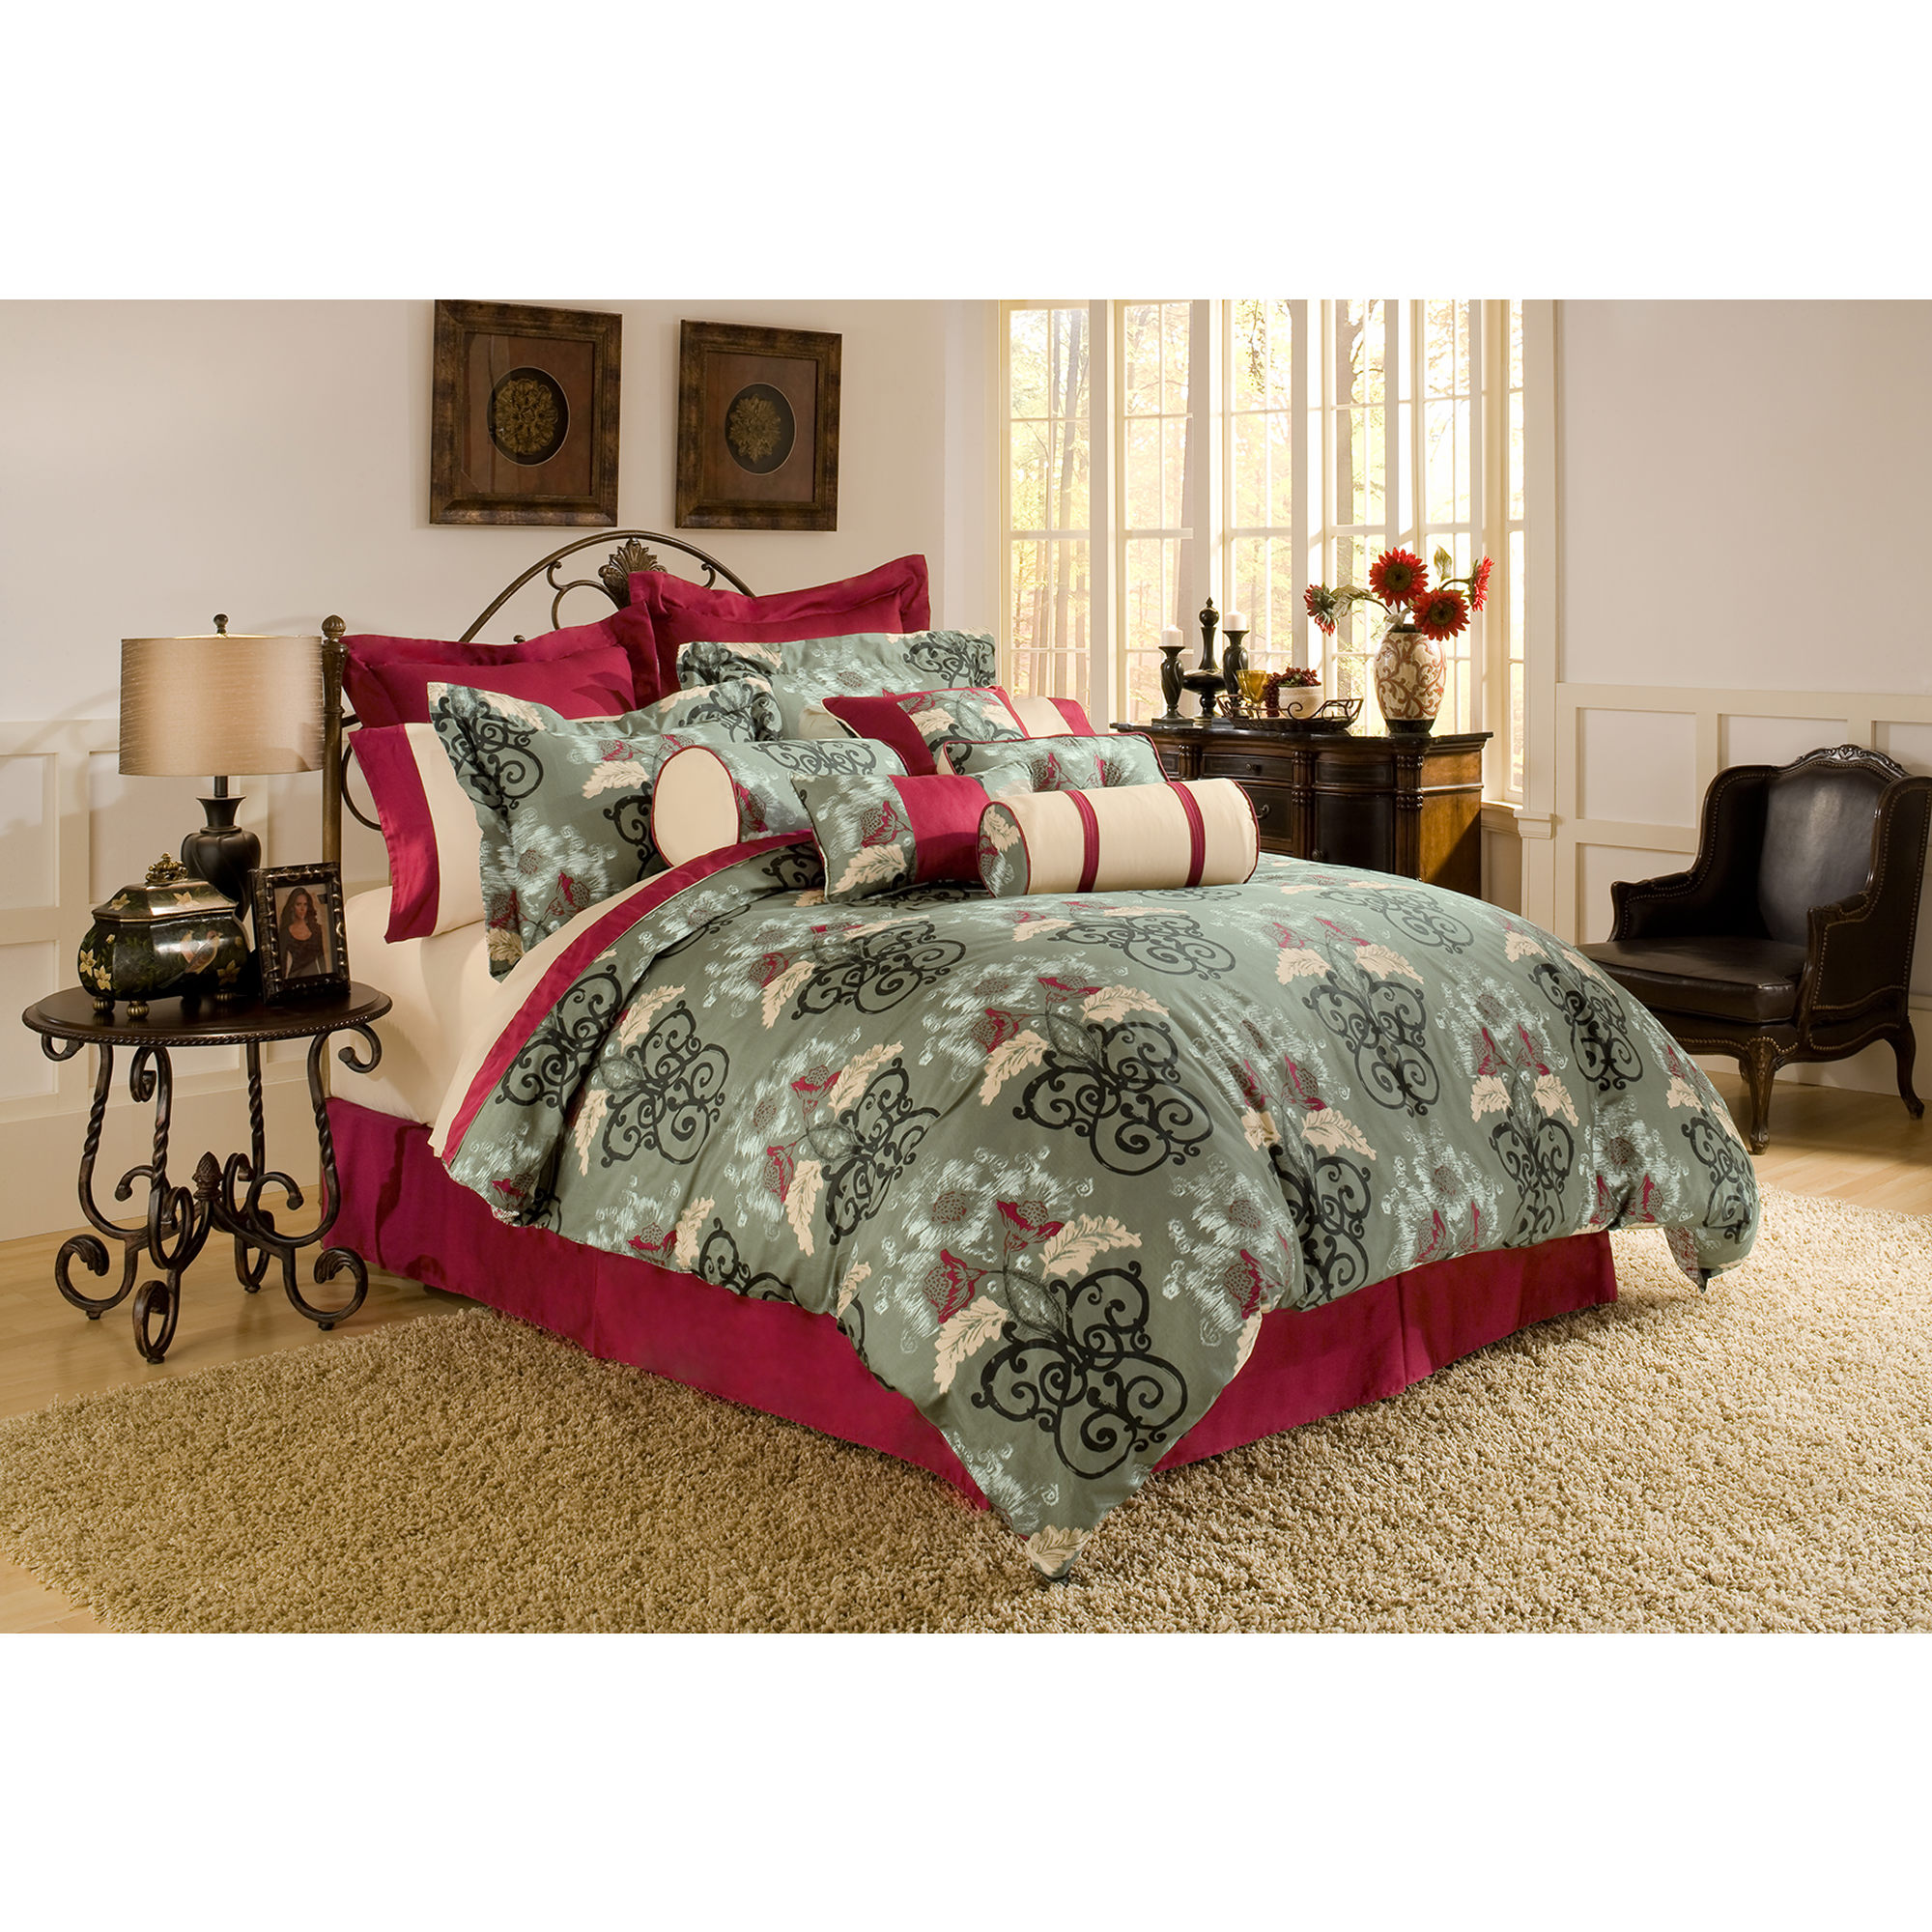 Inspiring king size quilts for modern bedroom design with king size quilt dimensions